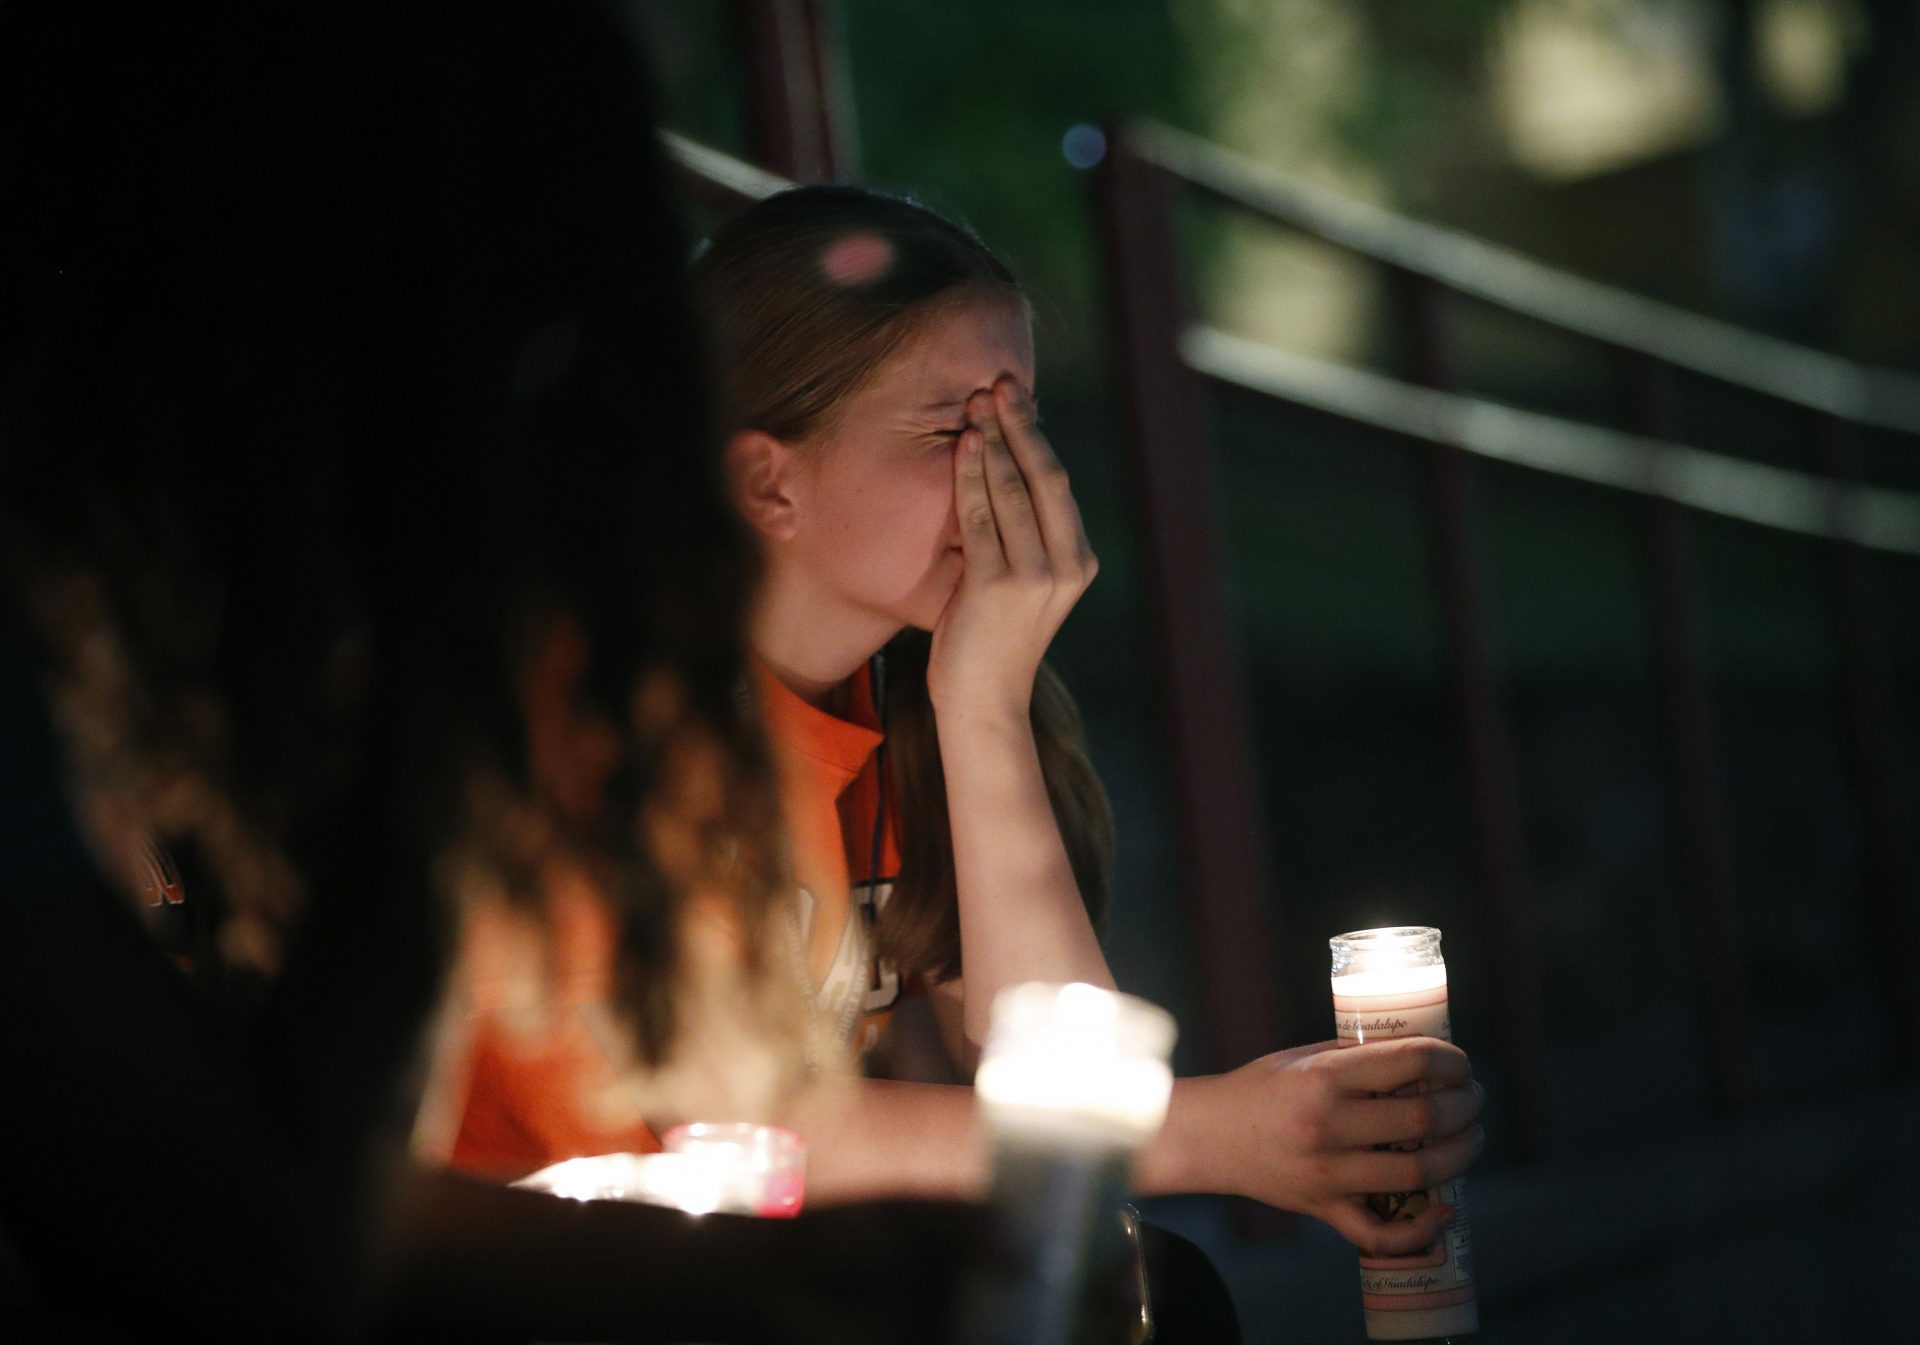 Experts: Stop blaming mental illness for mass shootings | PA Post